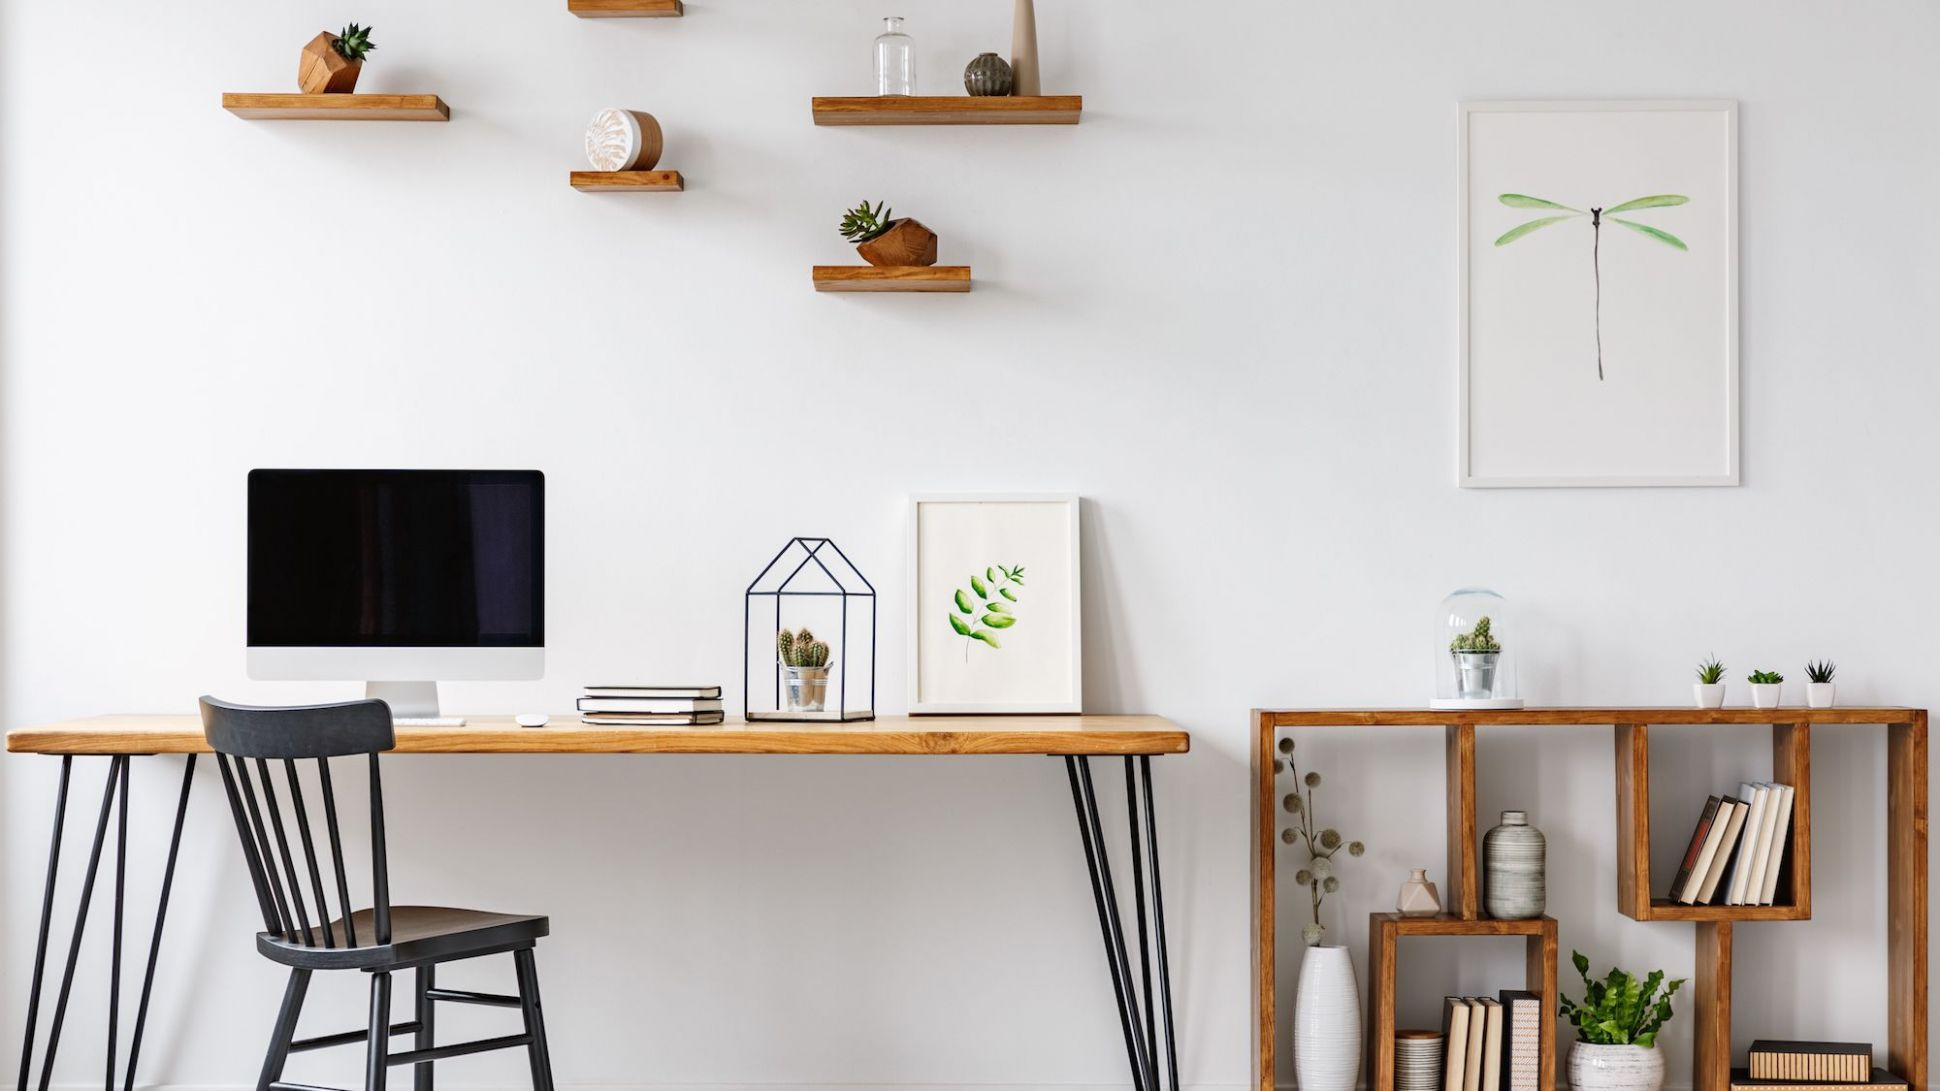 9 Best Office Wall Decor Ideas and Where to Buy | Fairygodboss - wall decor ideas for office